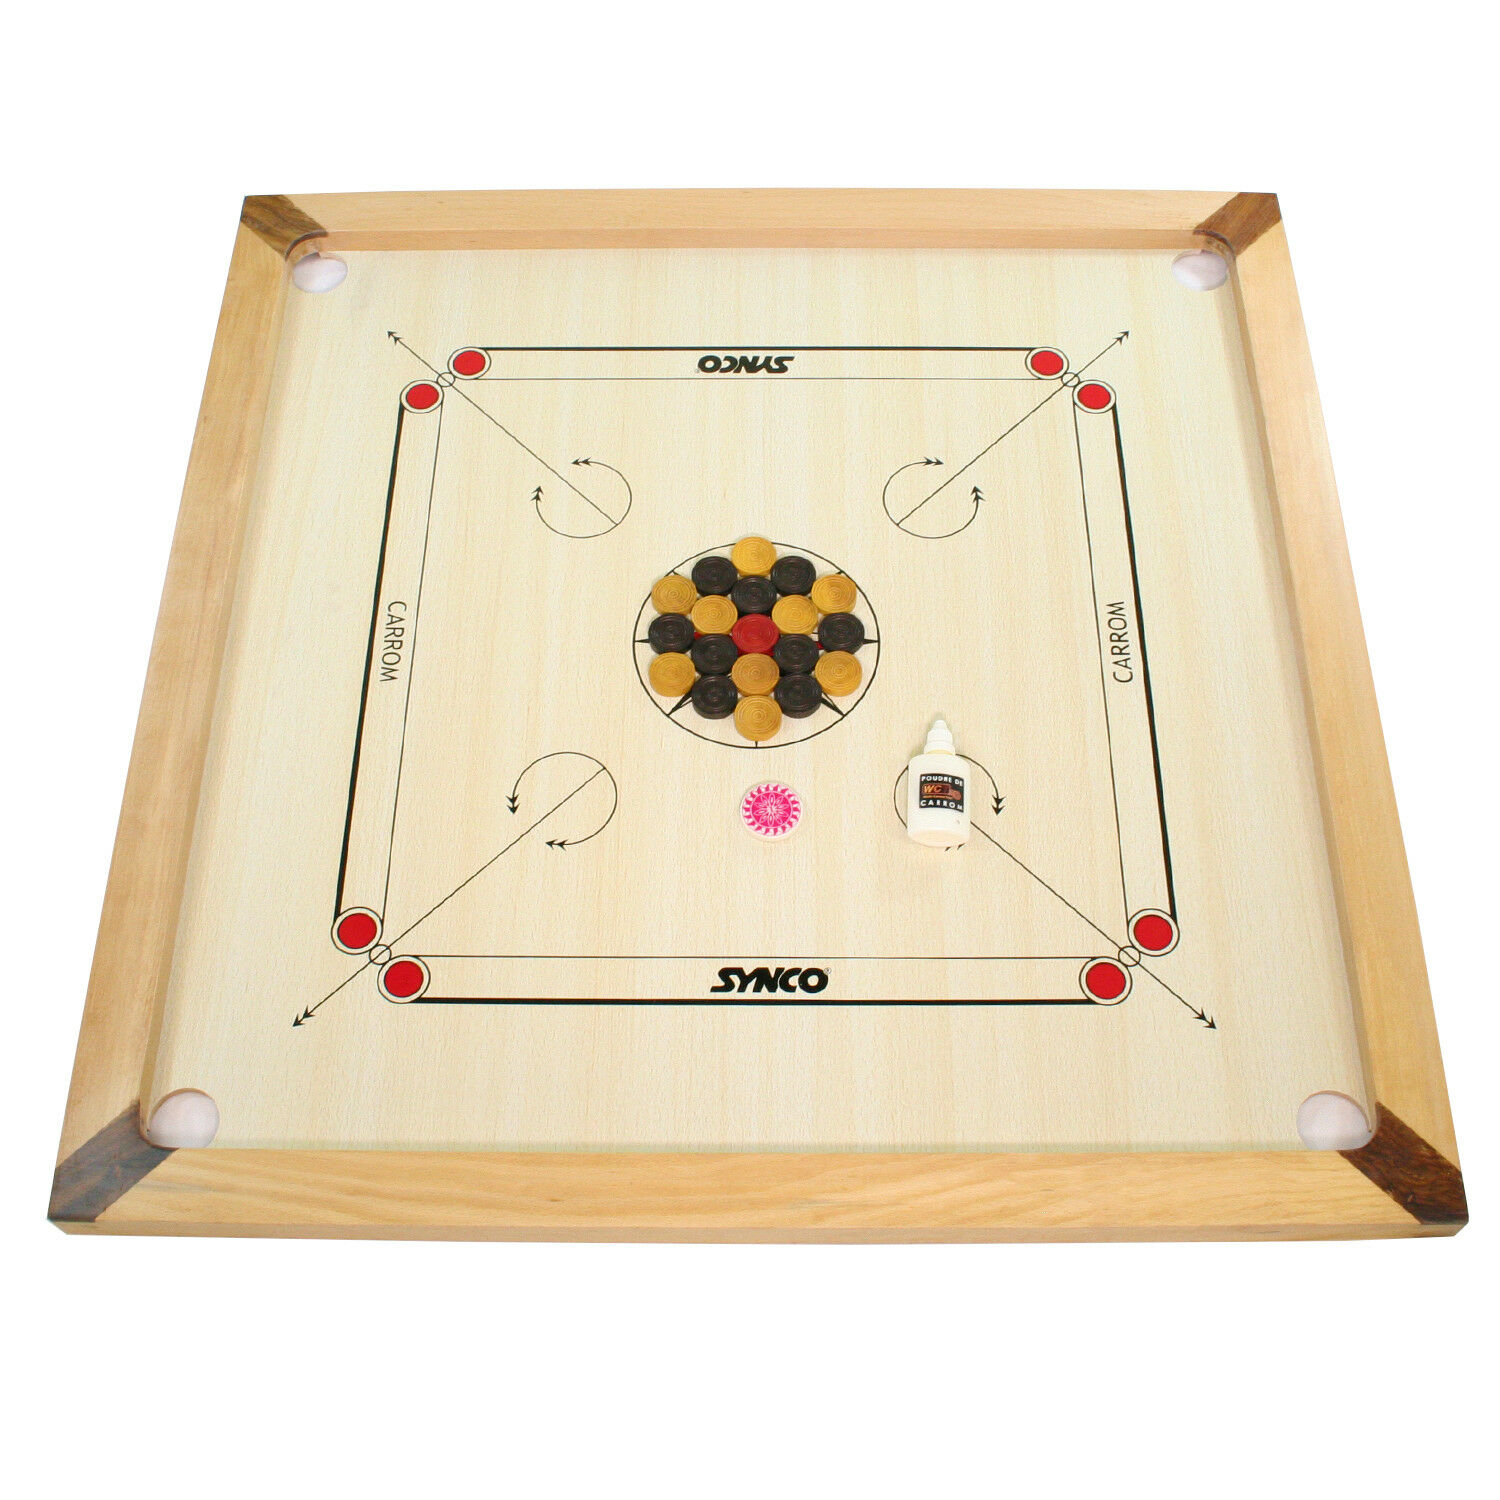 Carrom Set with 26  x 26  Synco Carrom Board - Mango and pinkwood frame